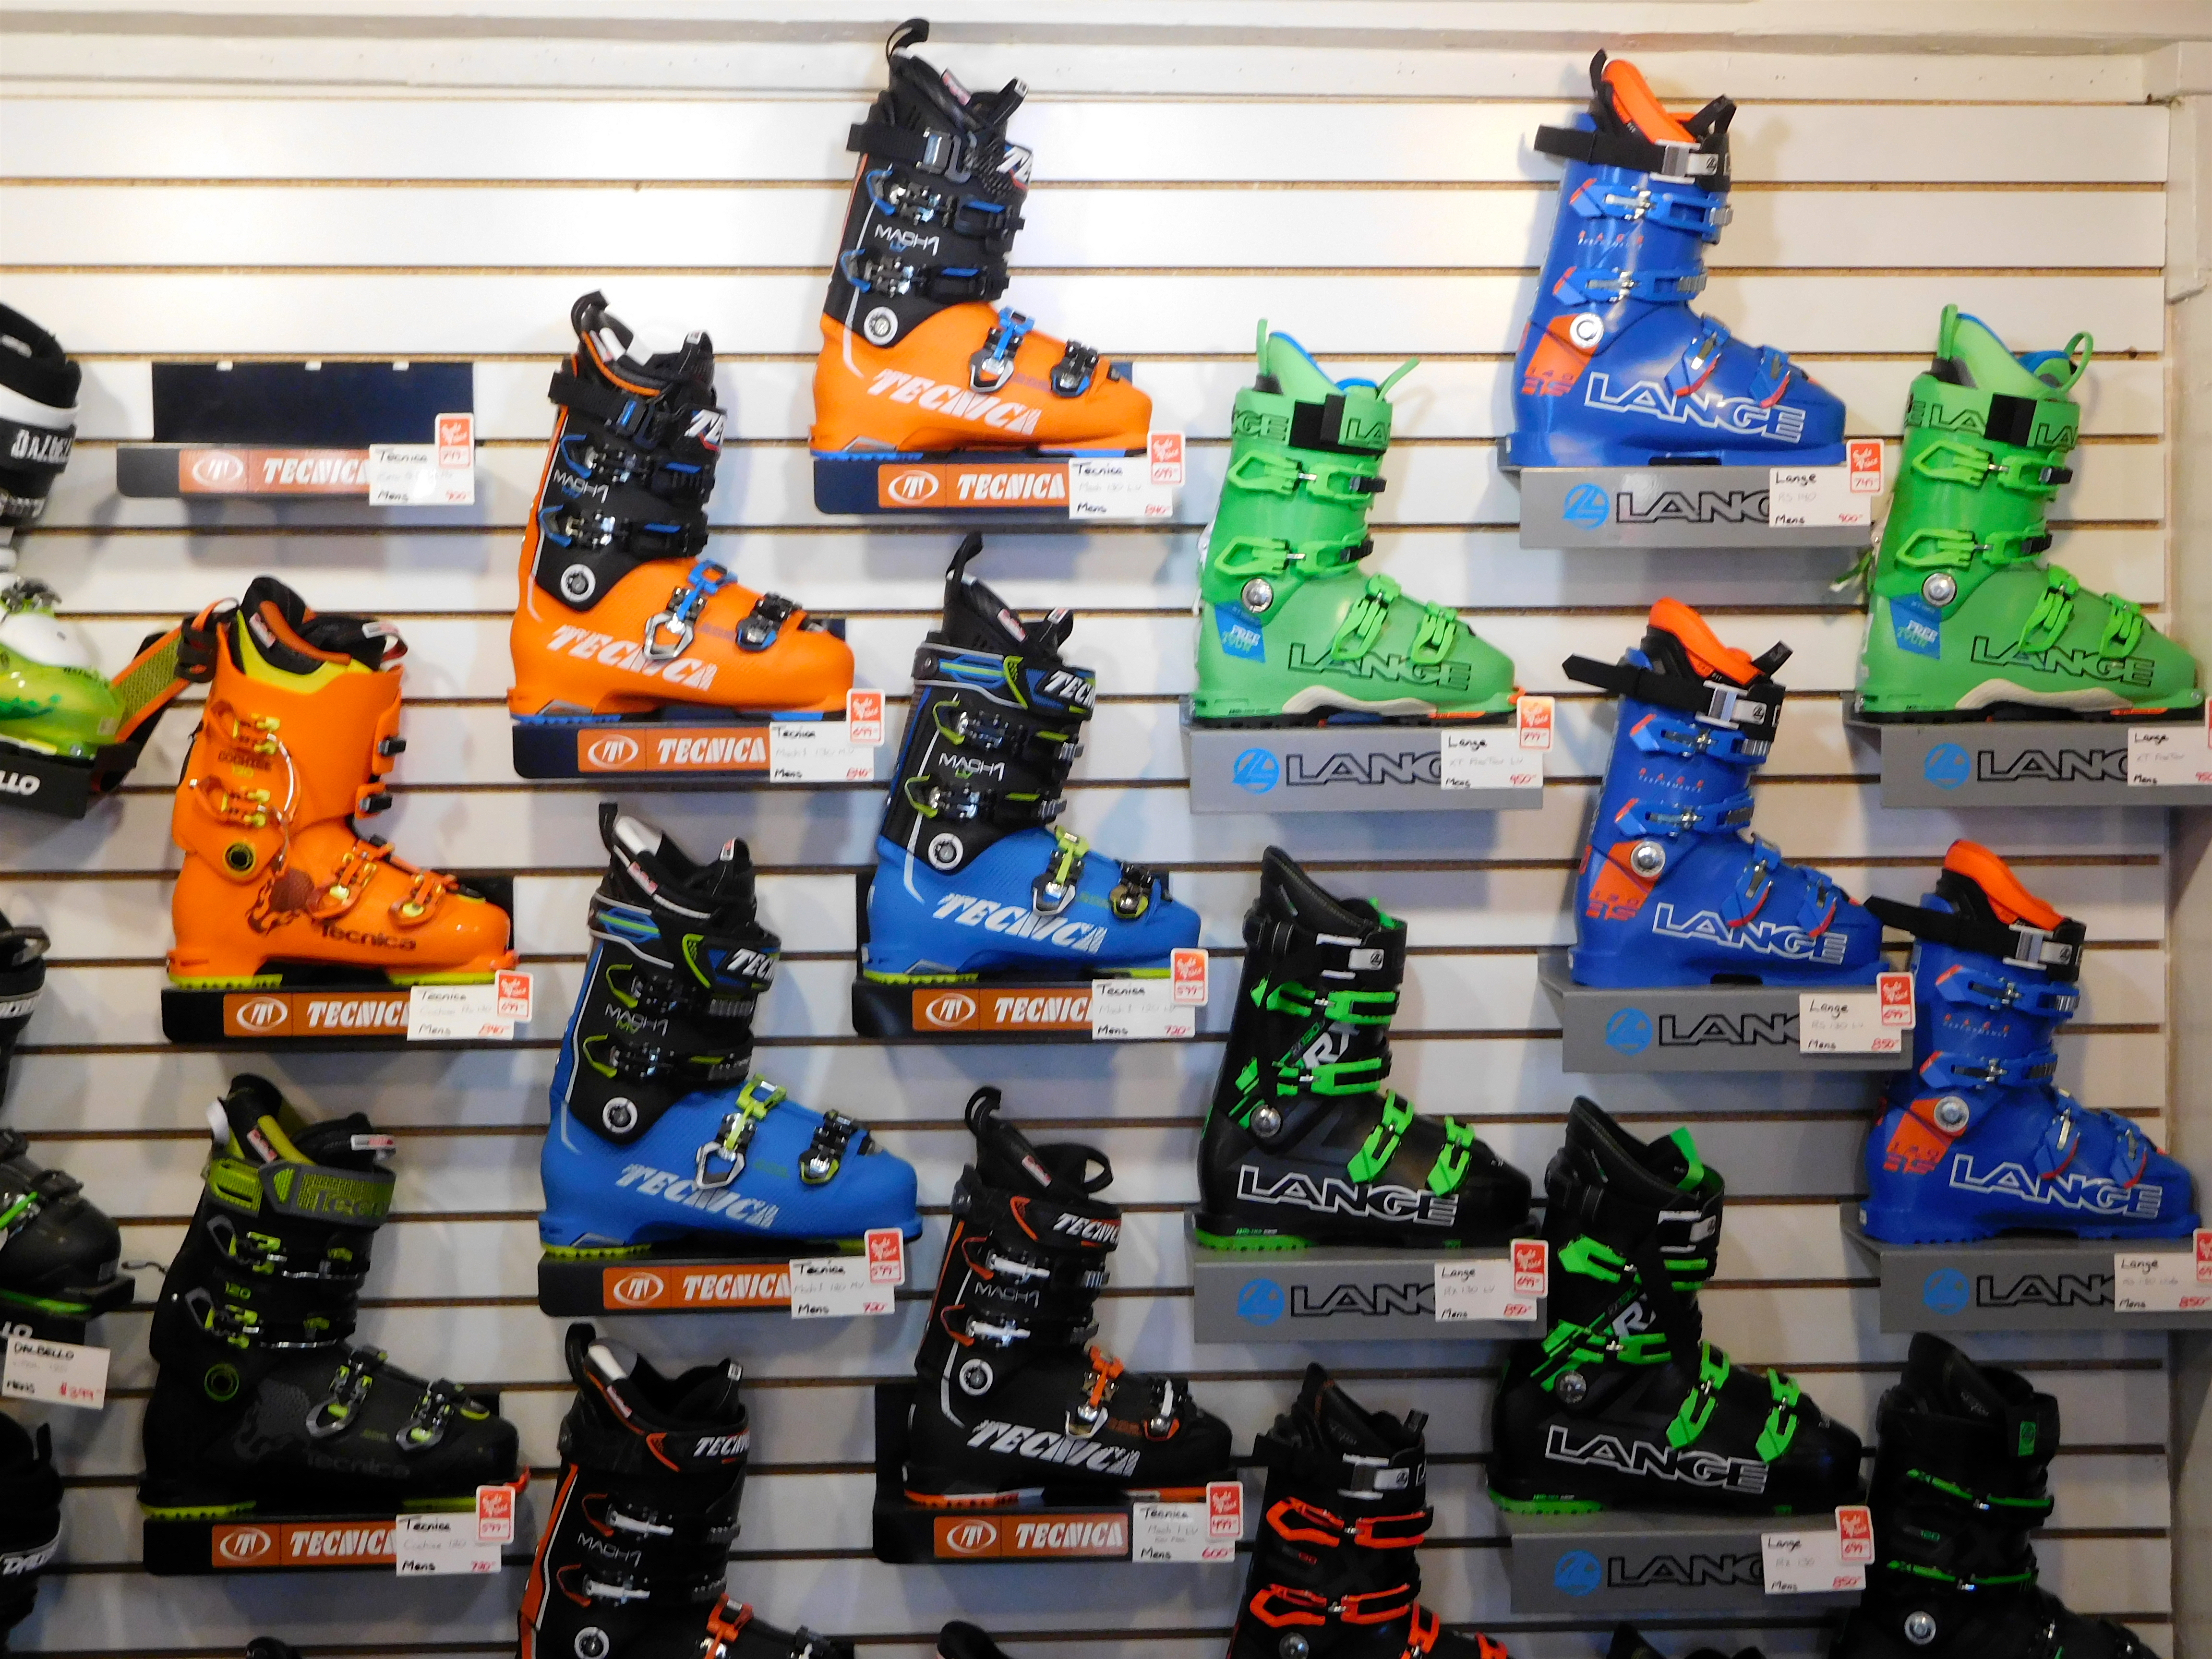 Boots galore at Olympic Bootworks.